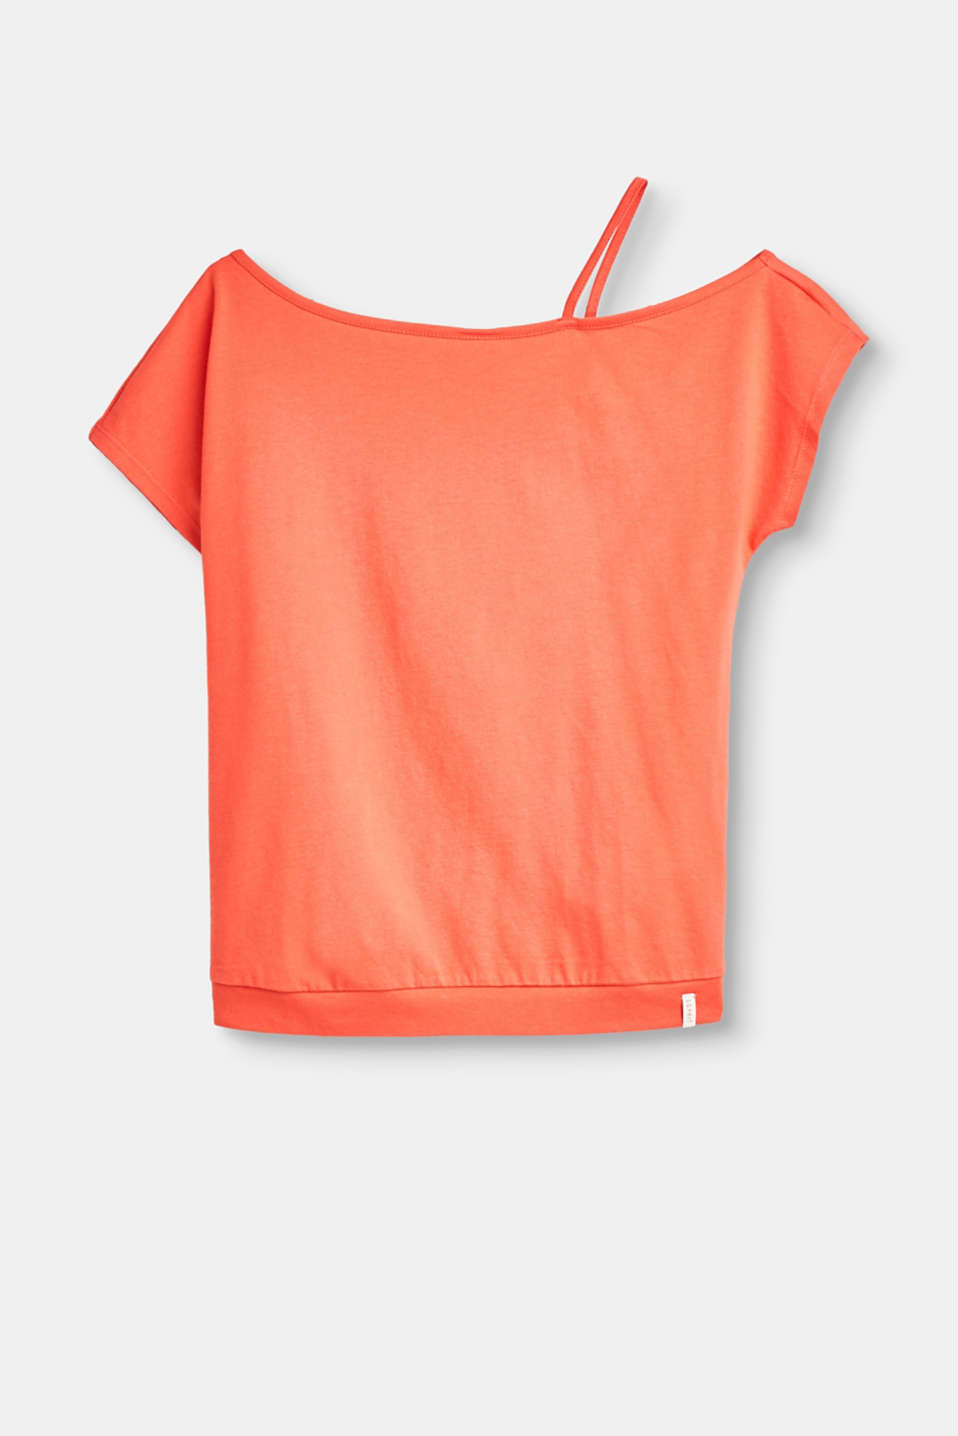 Esprit - Off-the-shoulder tee with a strap, 100% cotton